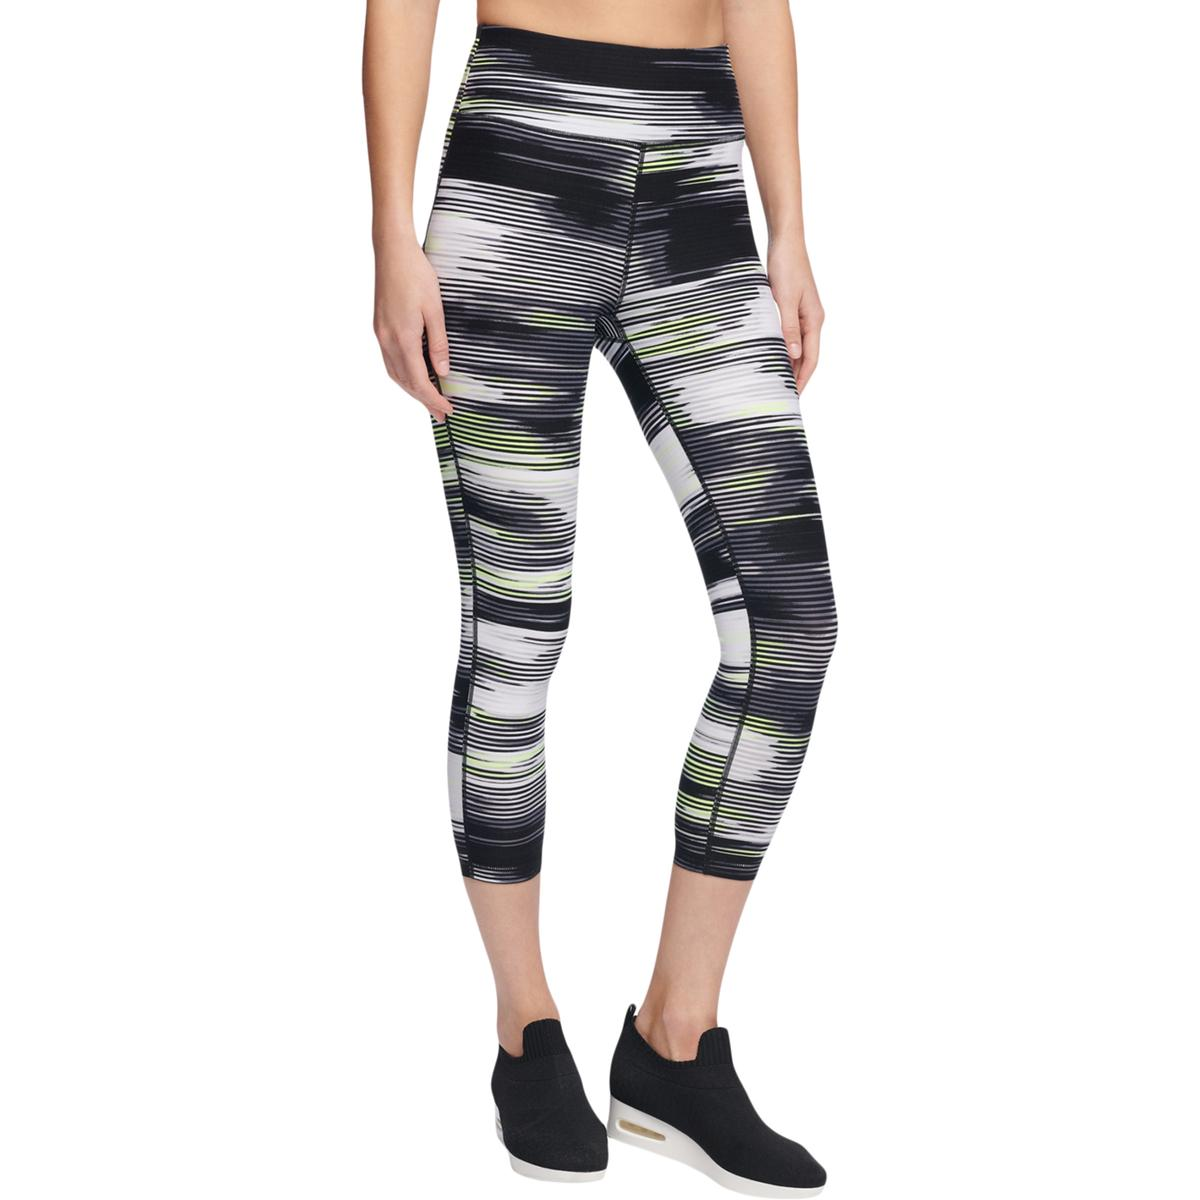 375d8fd2d6a97 Details about DKNY Womens Yoga Fitness Running Athletic Leggings BHFO 1543